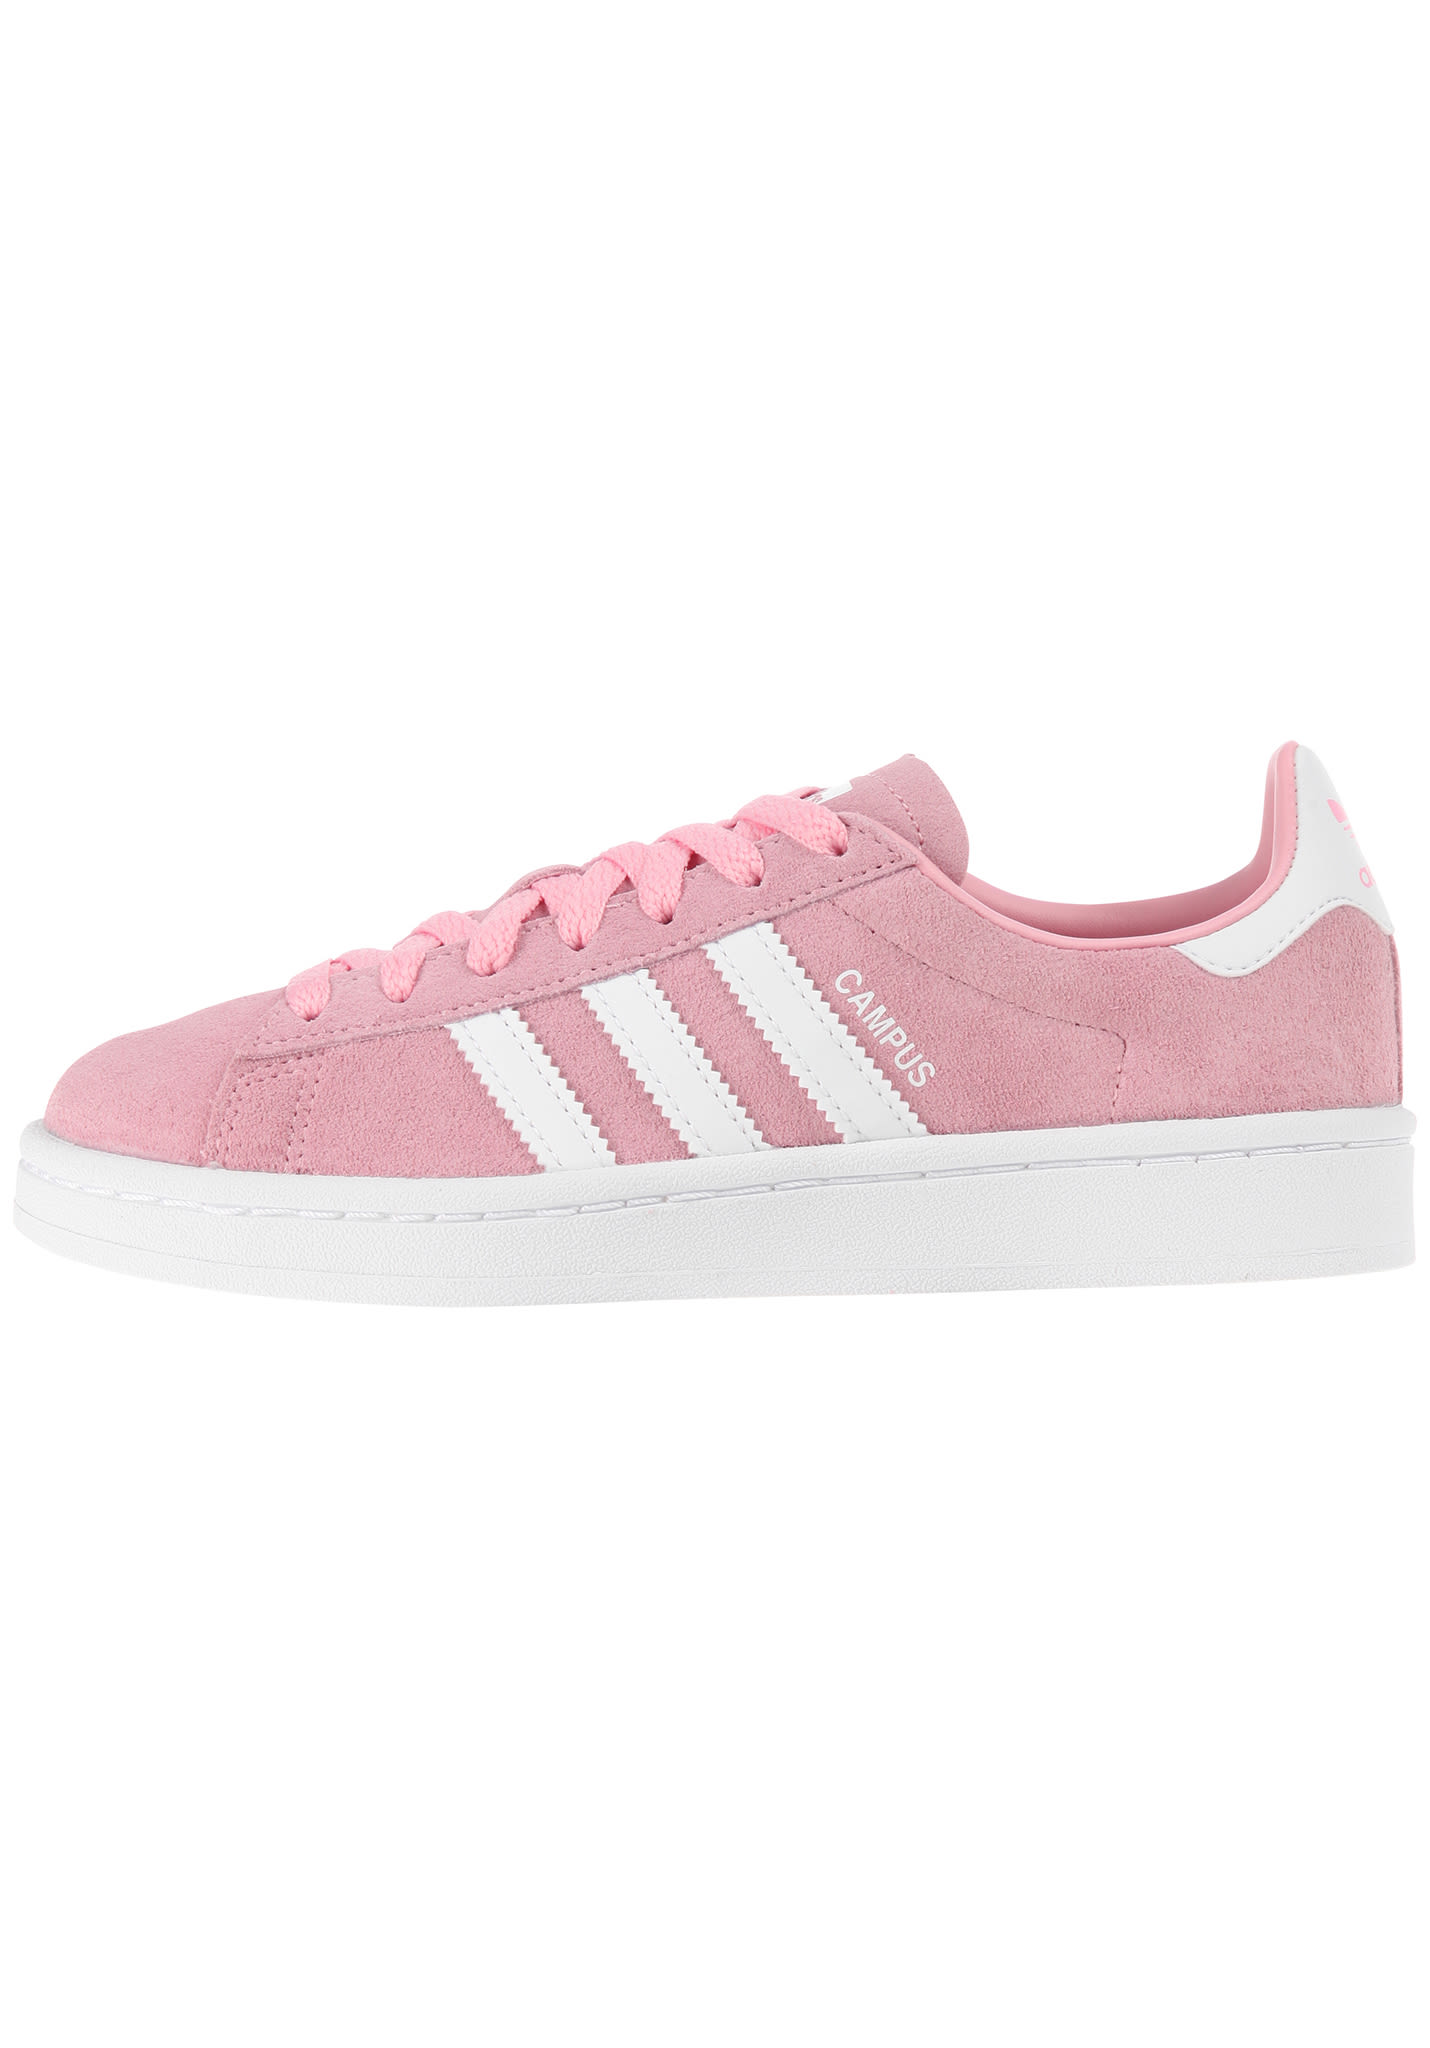 ADIDAS ORIGINALS Campus - Sneakers - Pink